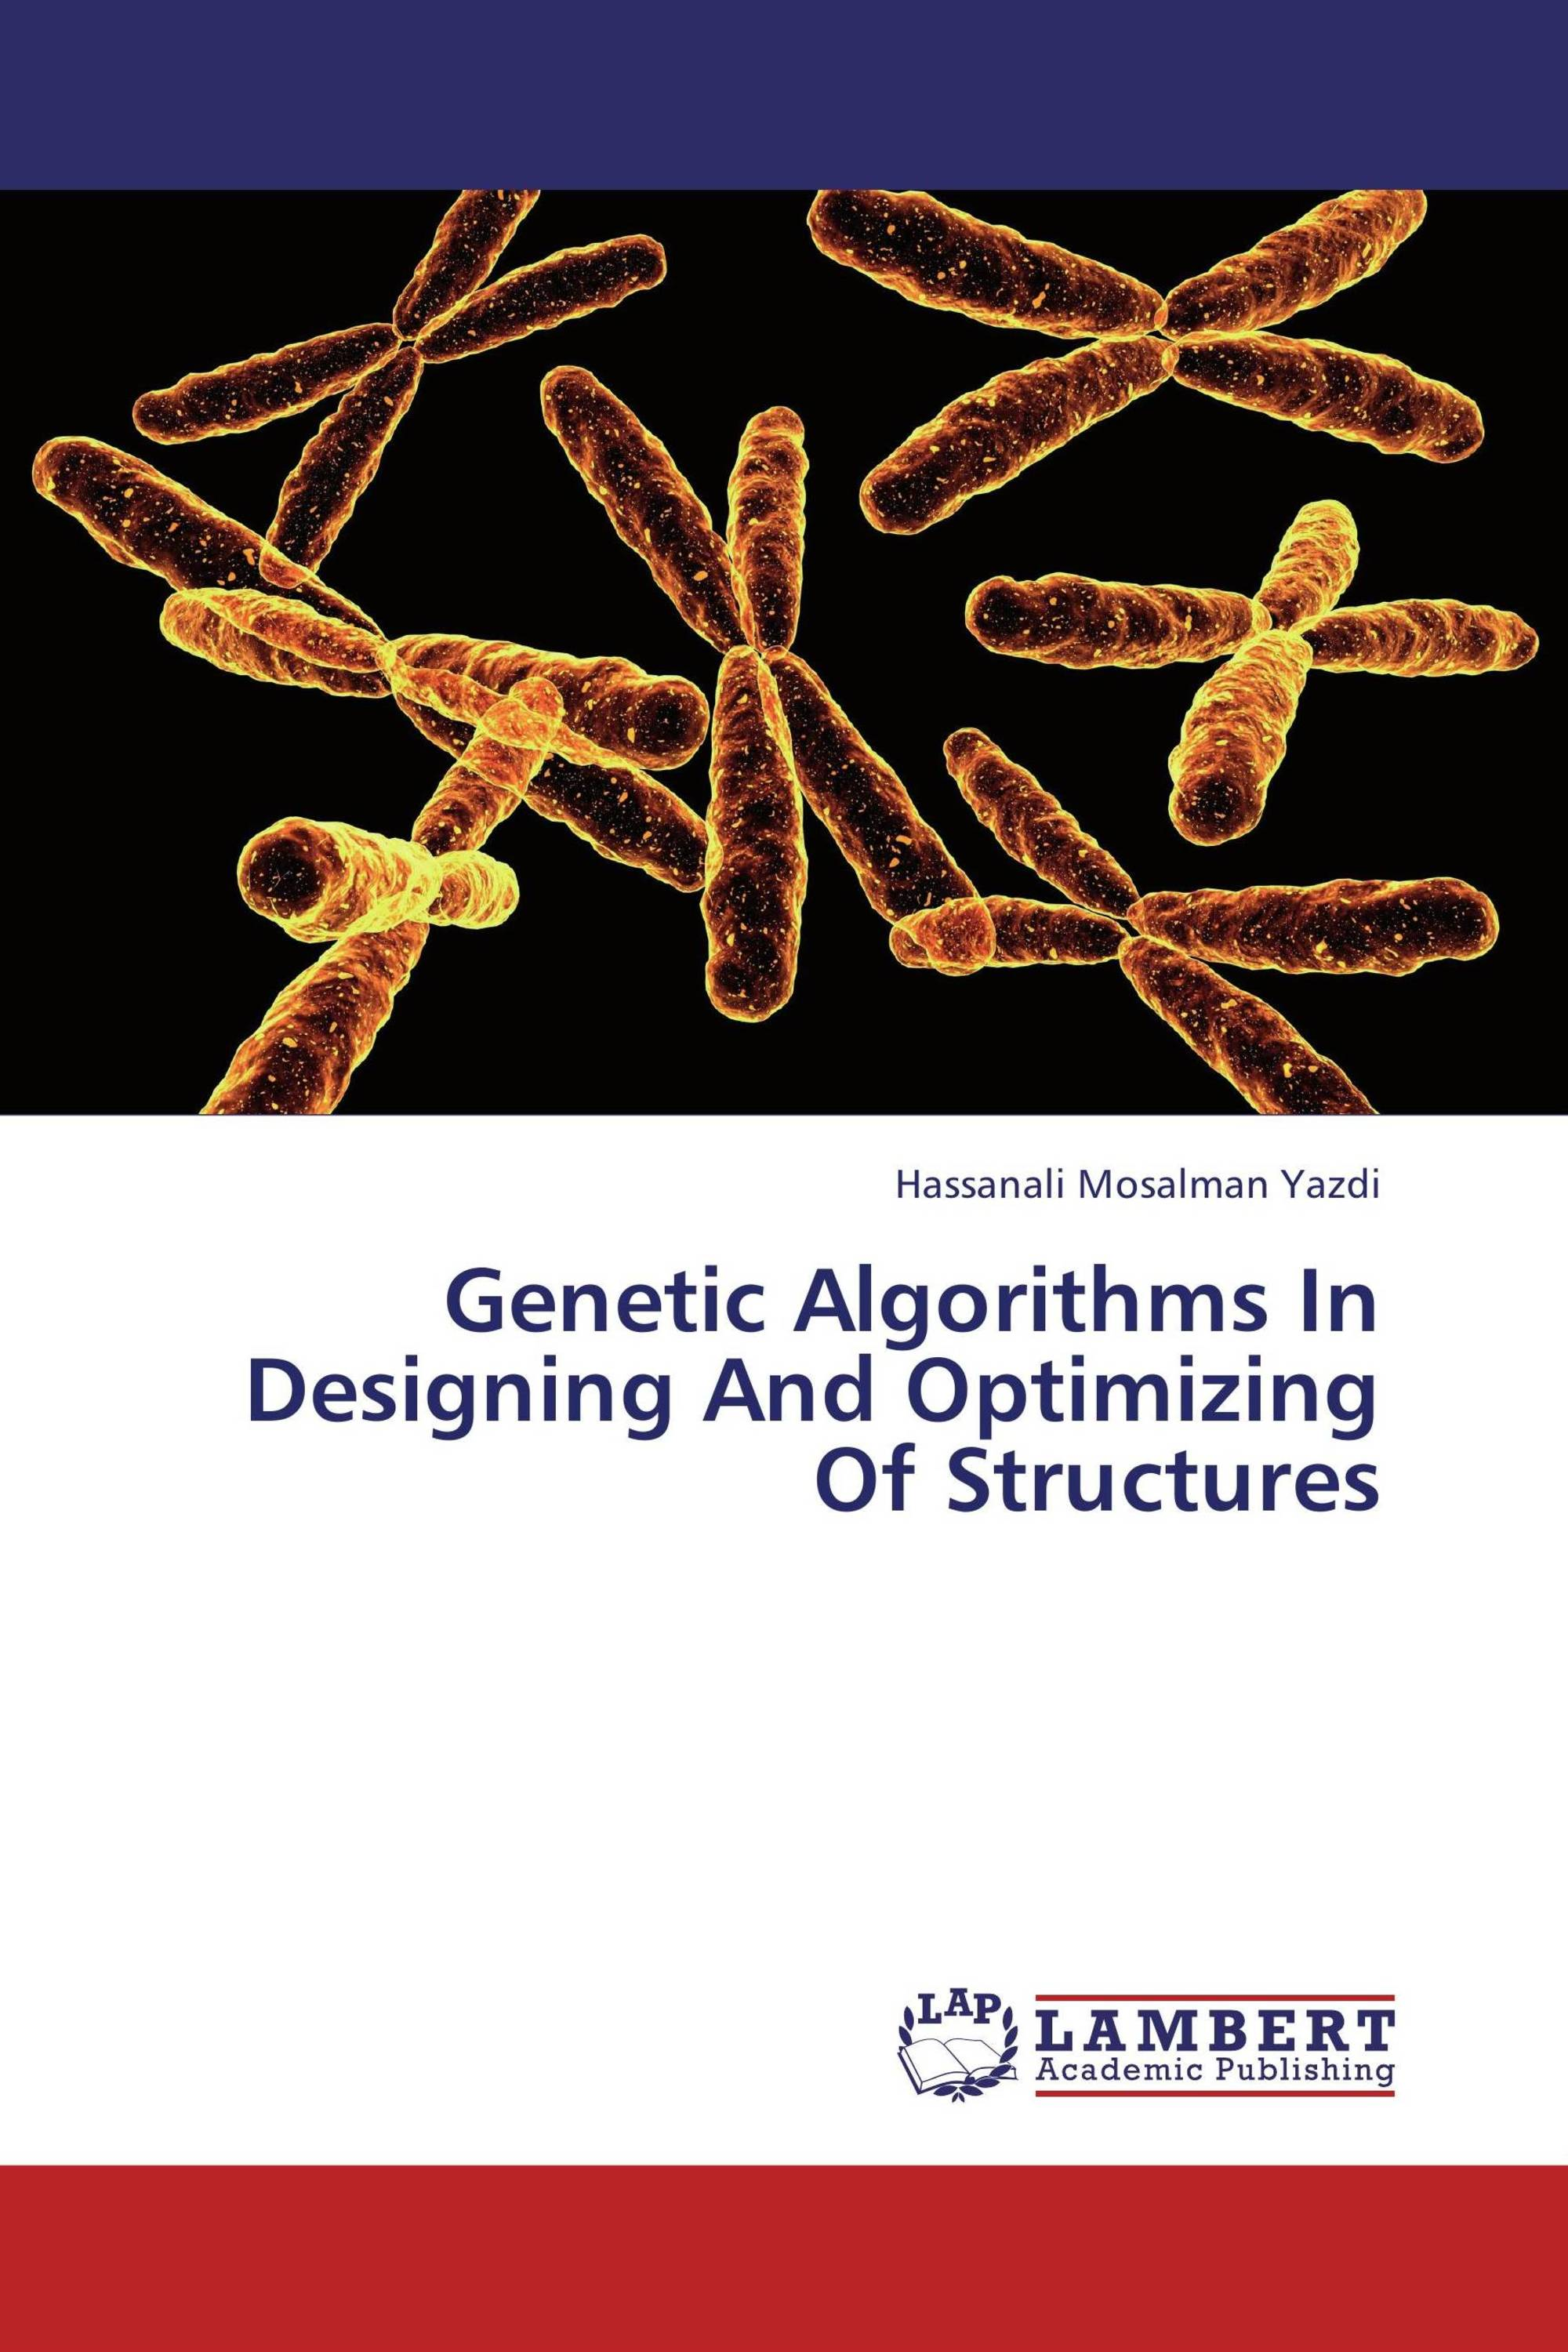 Genetic Algorithms In Designing And Optimizing Of Structures